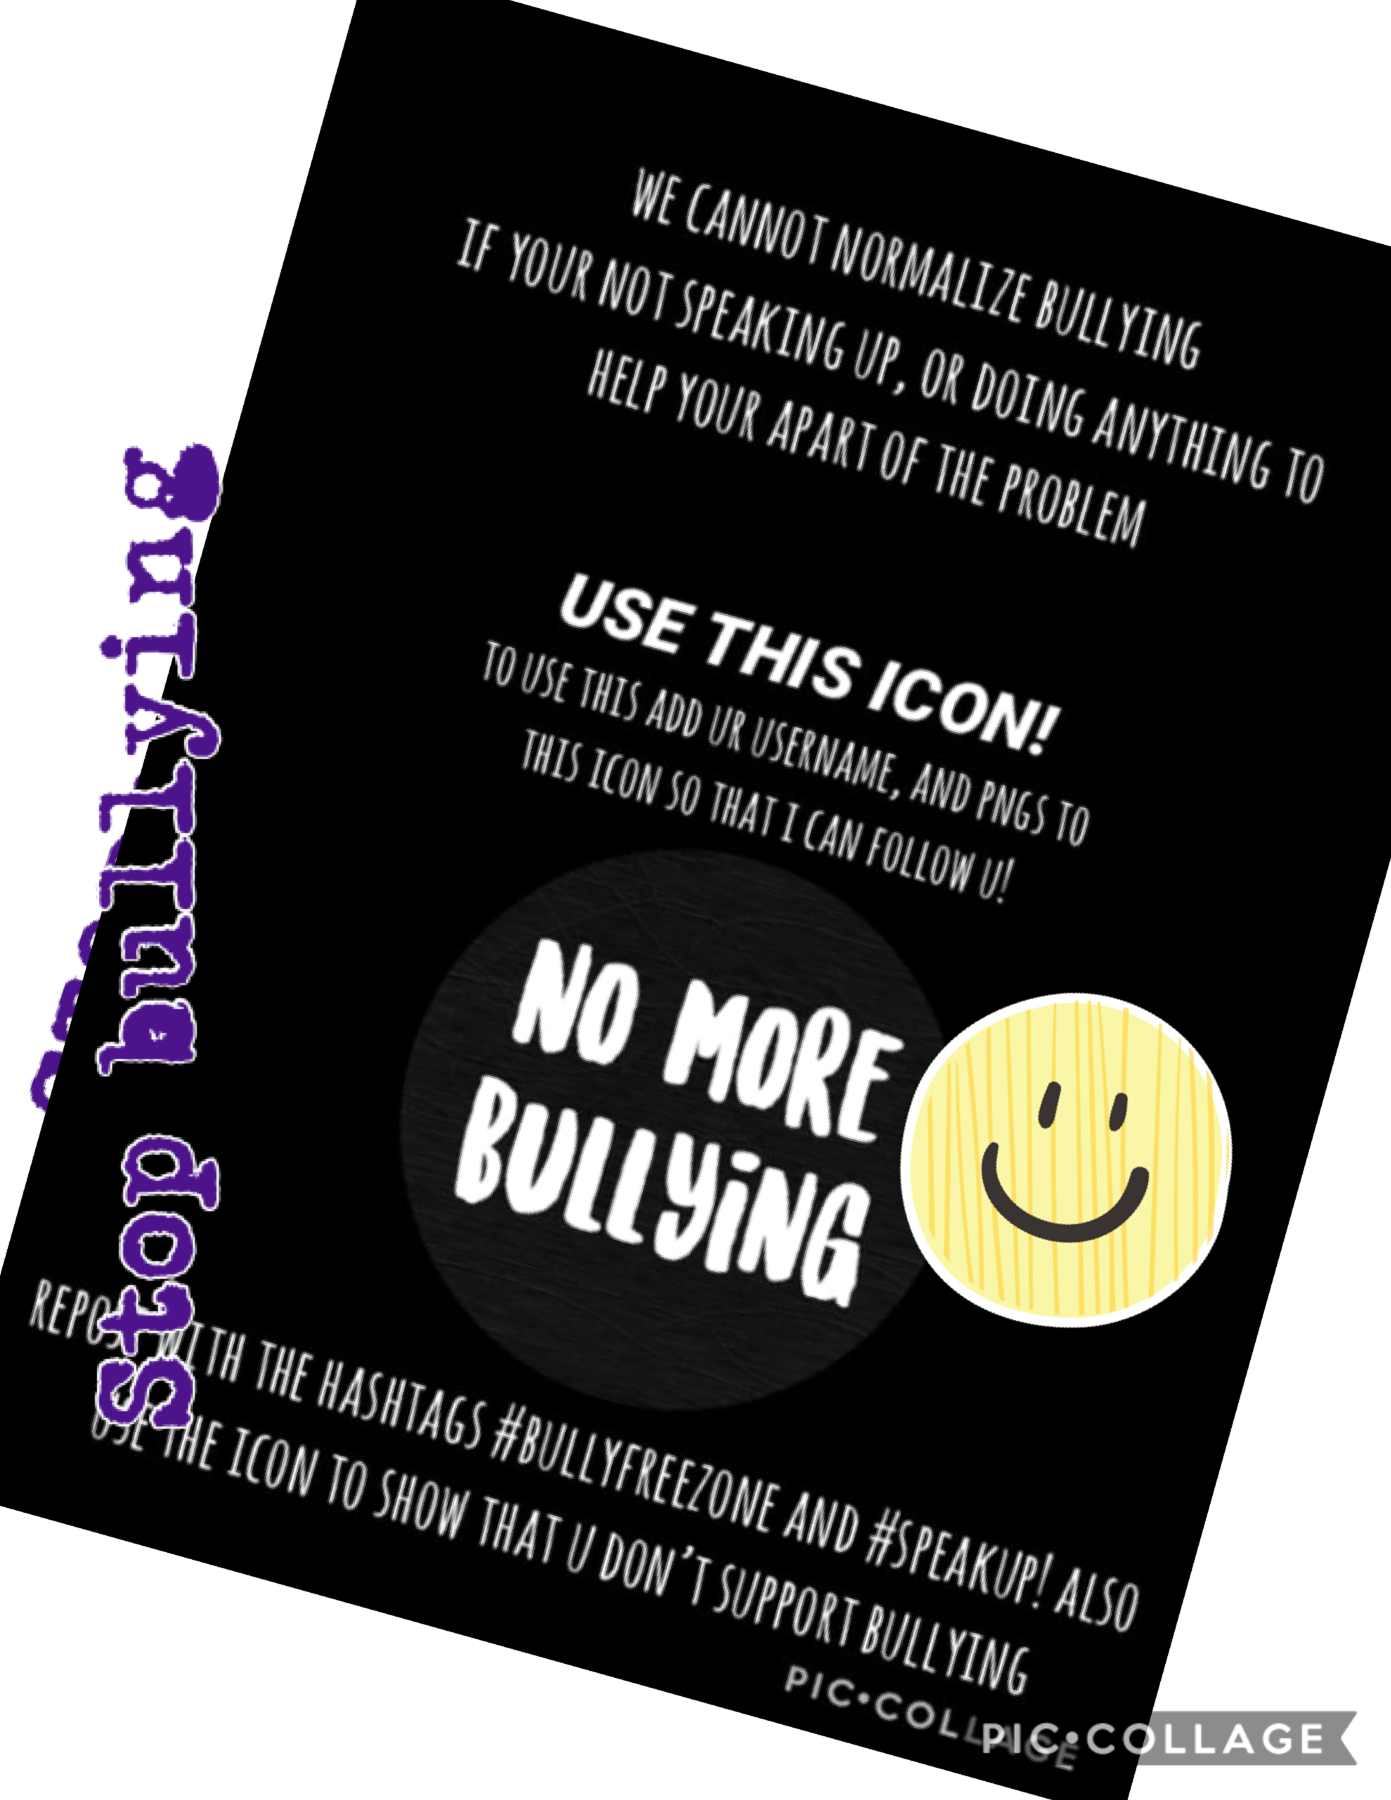 Stop bullying !!! Treat people equally and respect people the way YOU want to be respected.